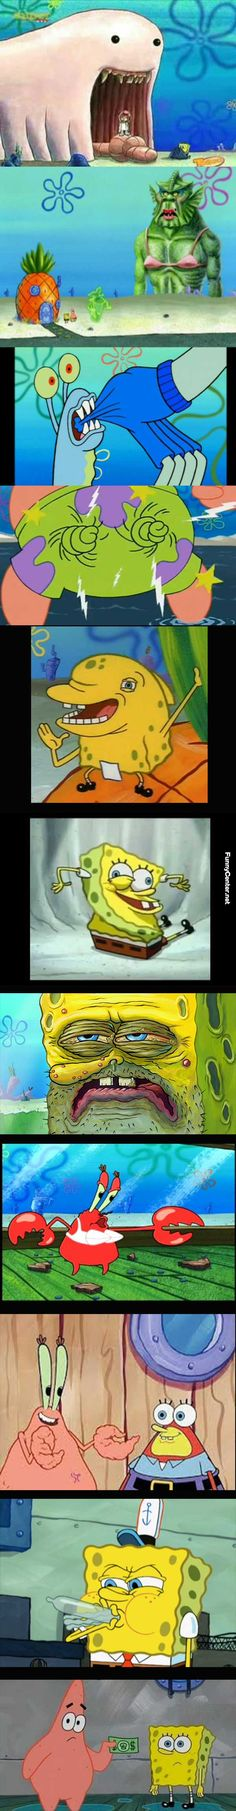 Scenes From SpongeBob Looks Weird Without Context. They look weird even in context